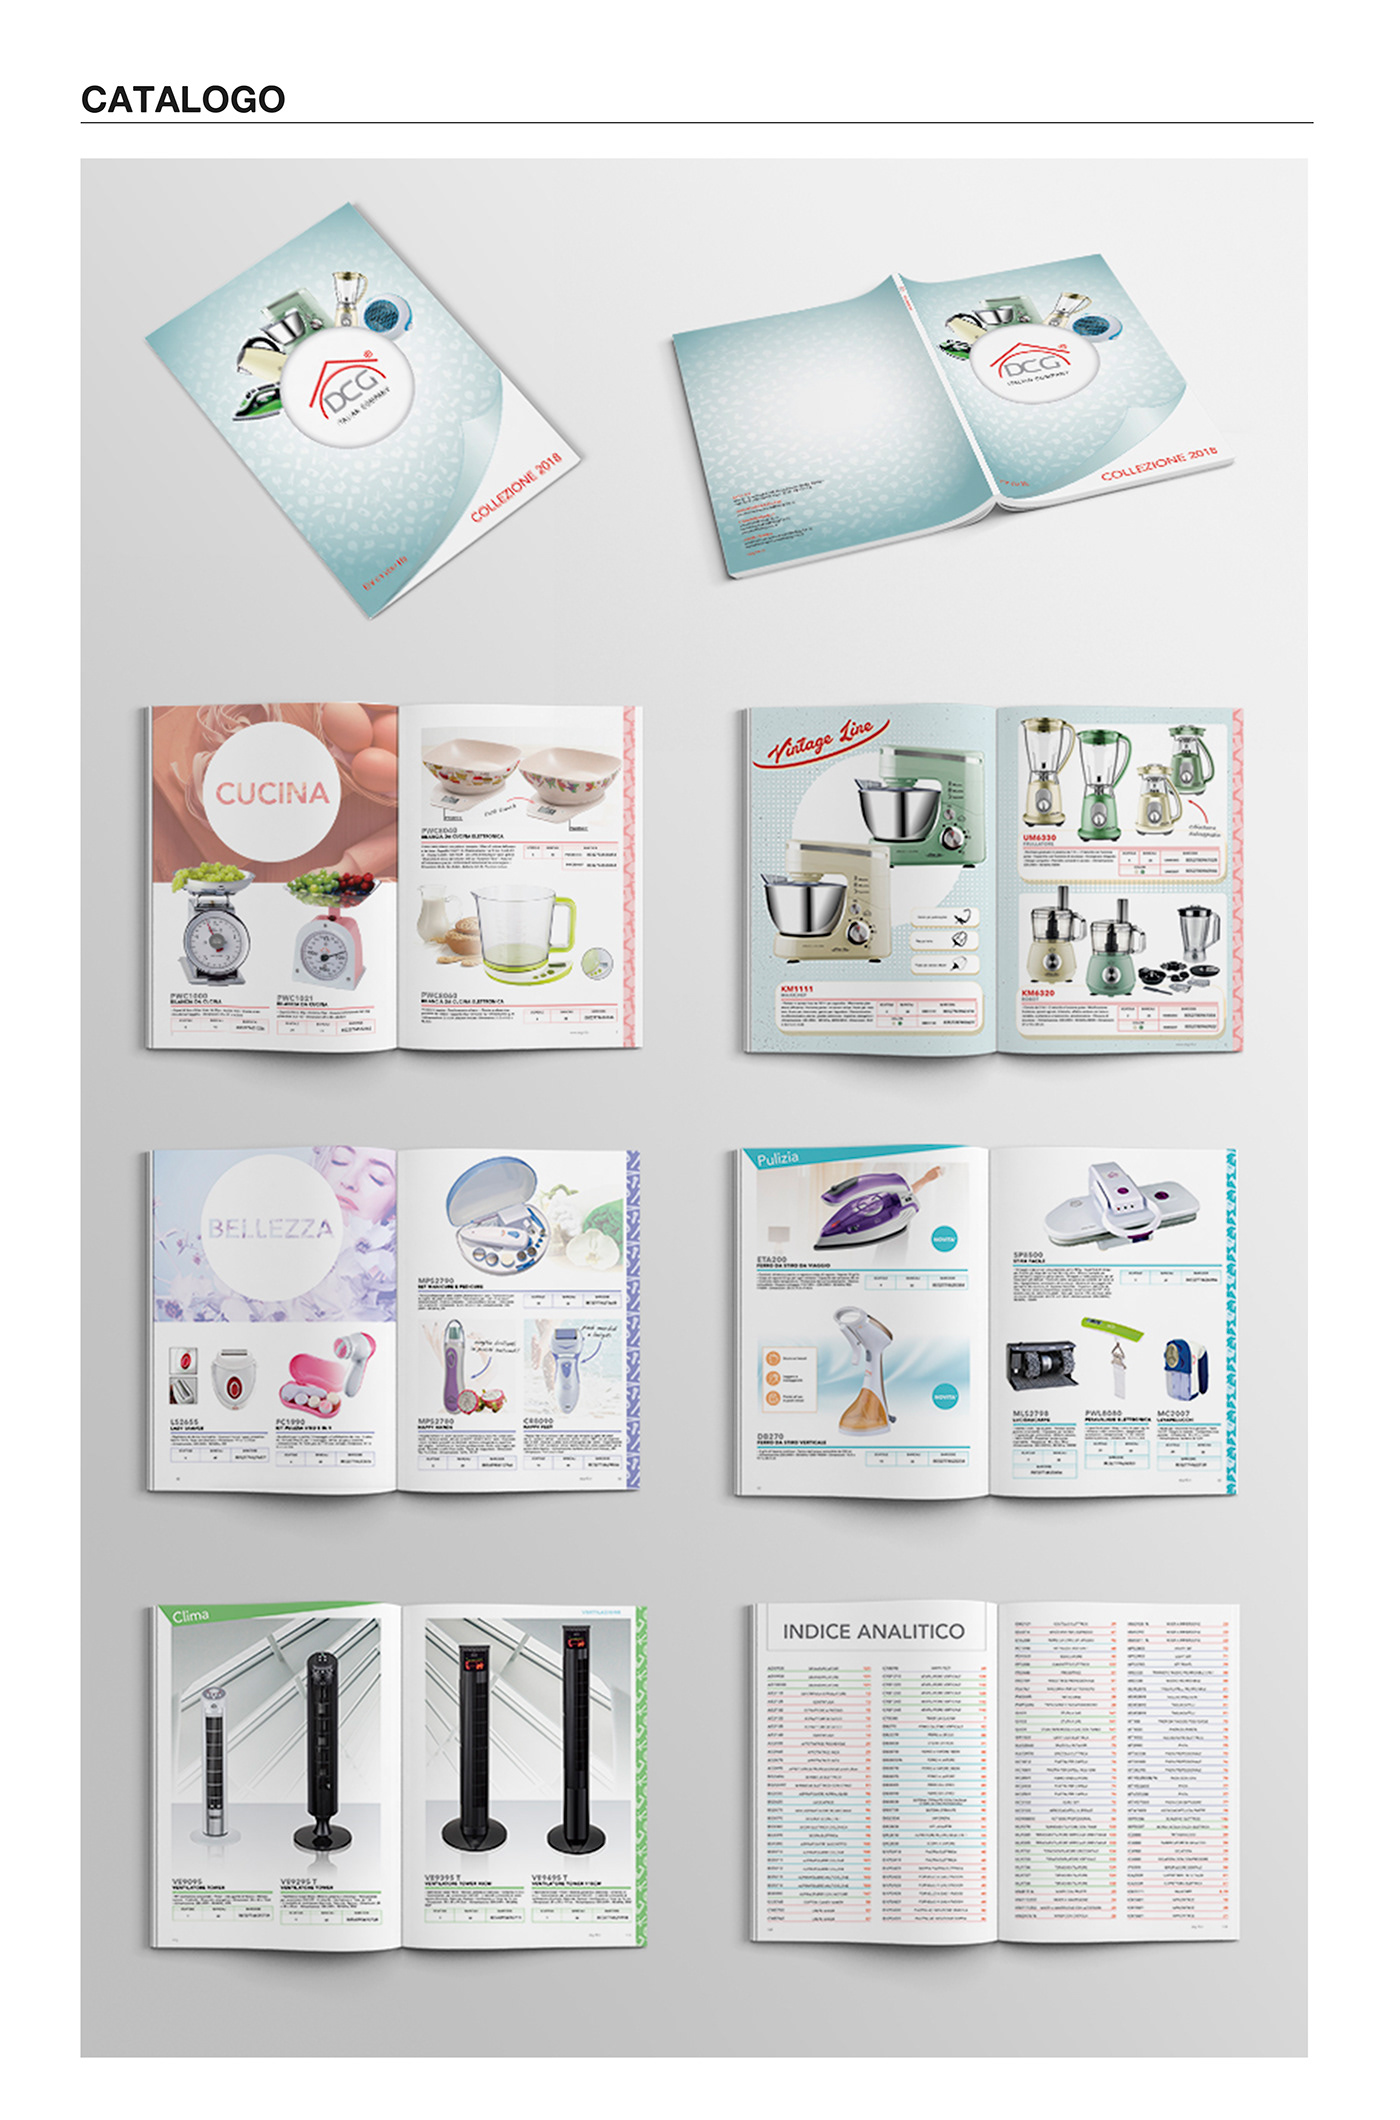 corporate product appliances pattern Packaging graphic design